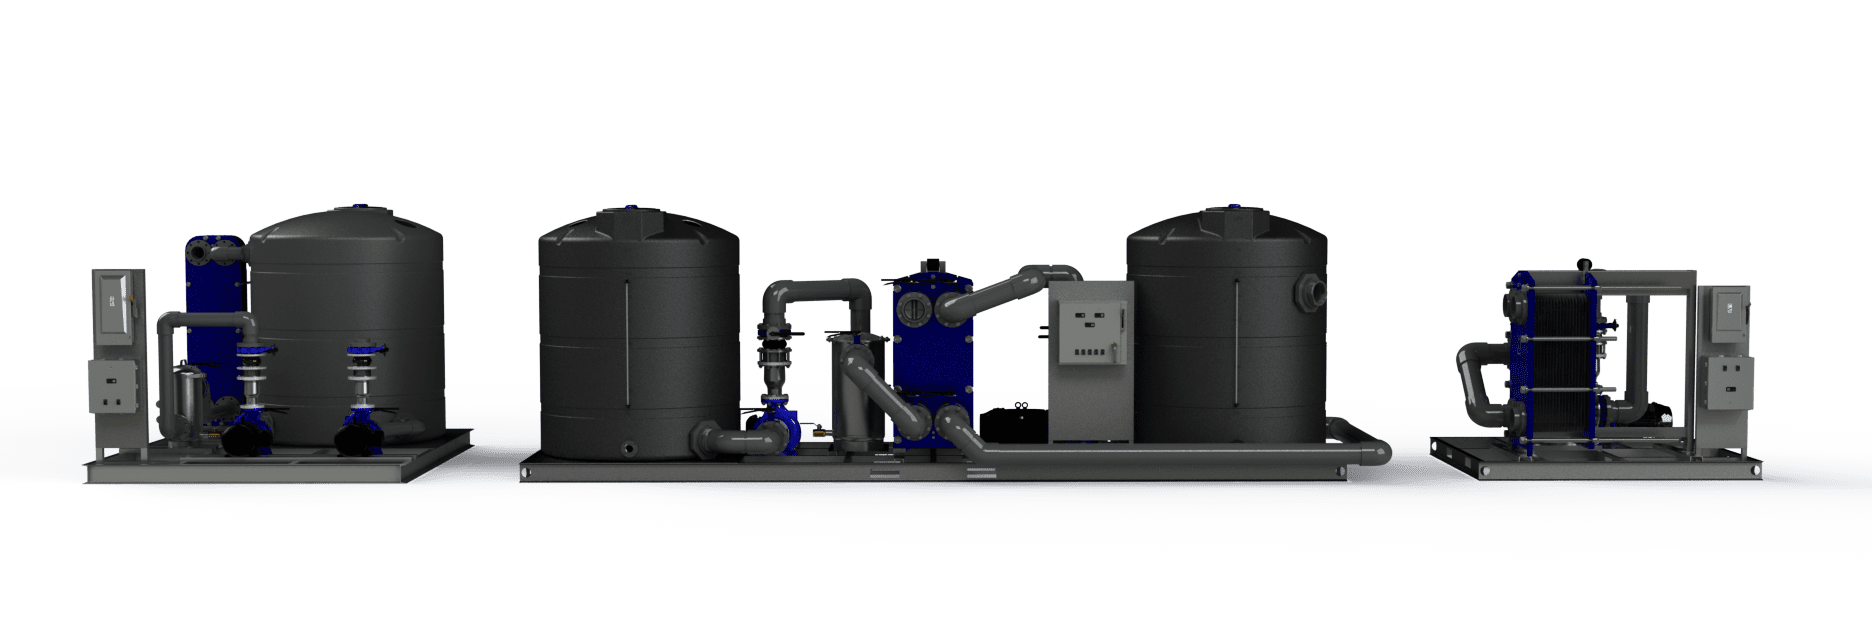 Pump Tank Systems for Towers